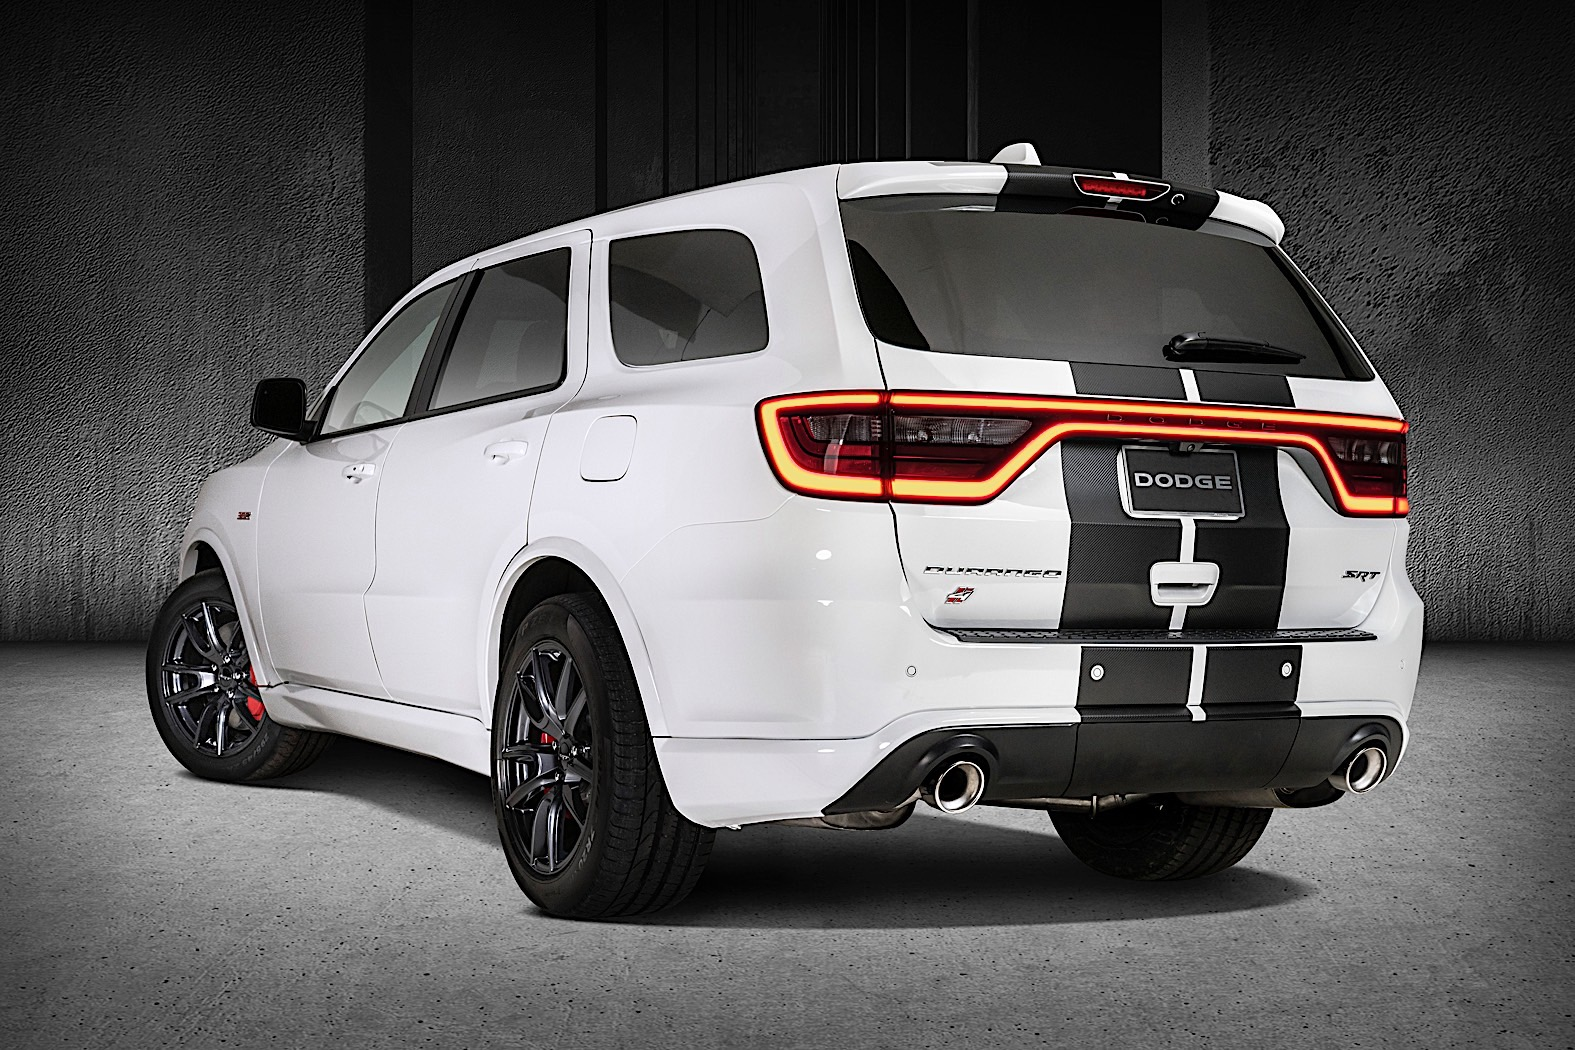 Dodge Durango Gets Moparized, Receives Multi-Colored Racing Stripes